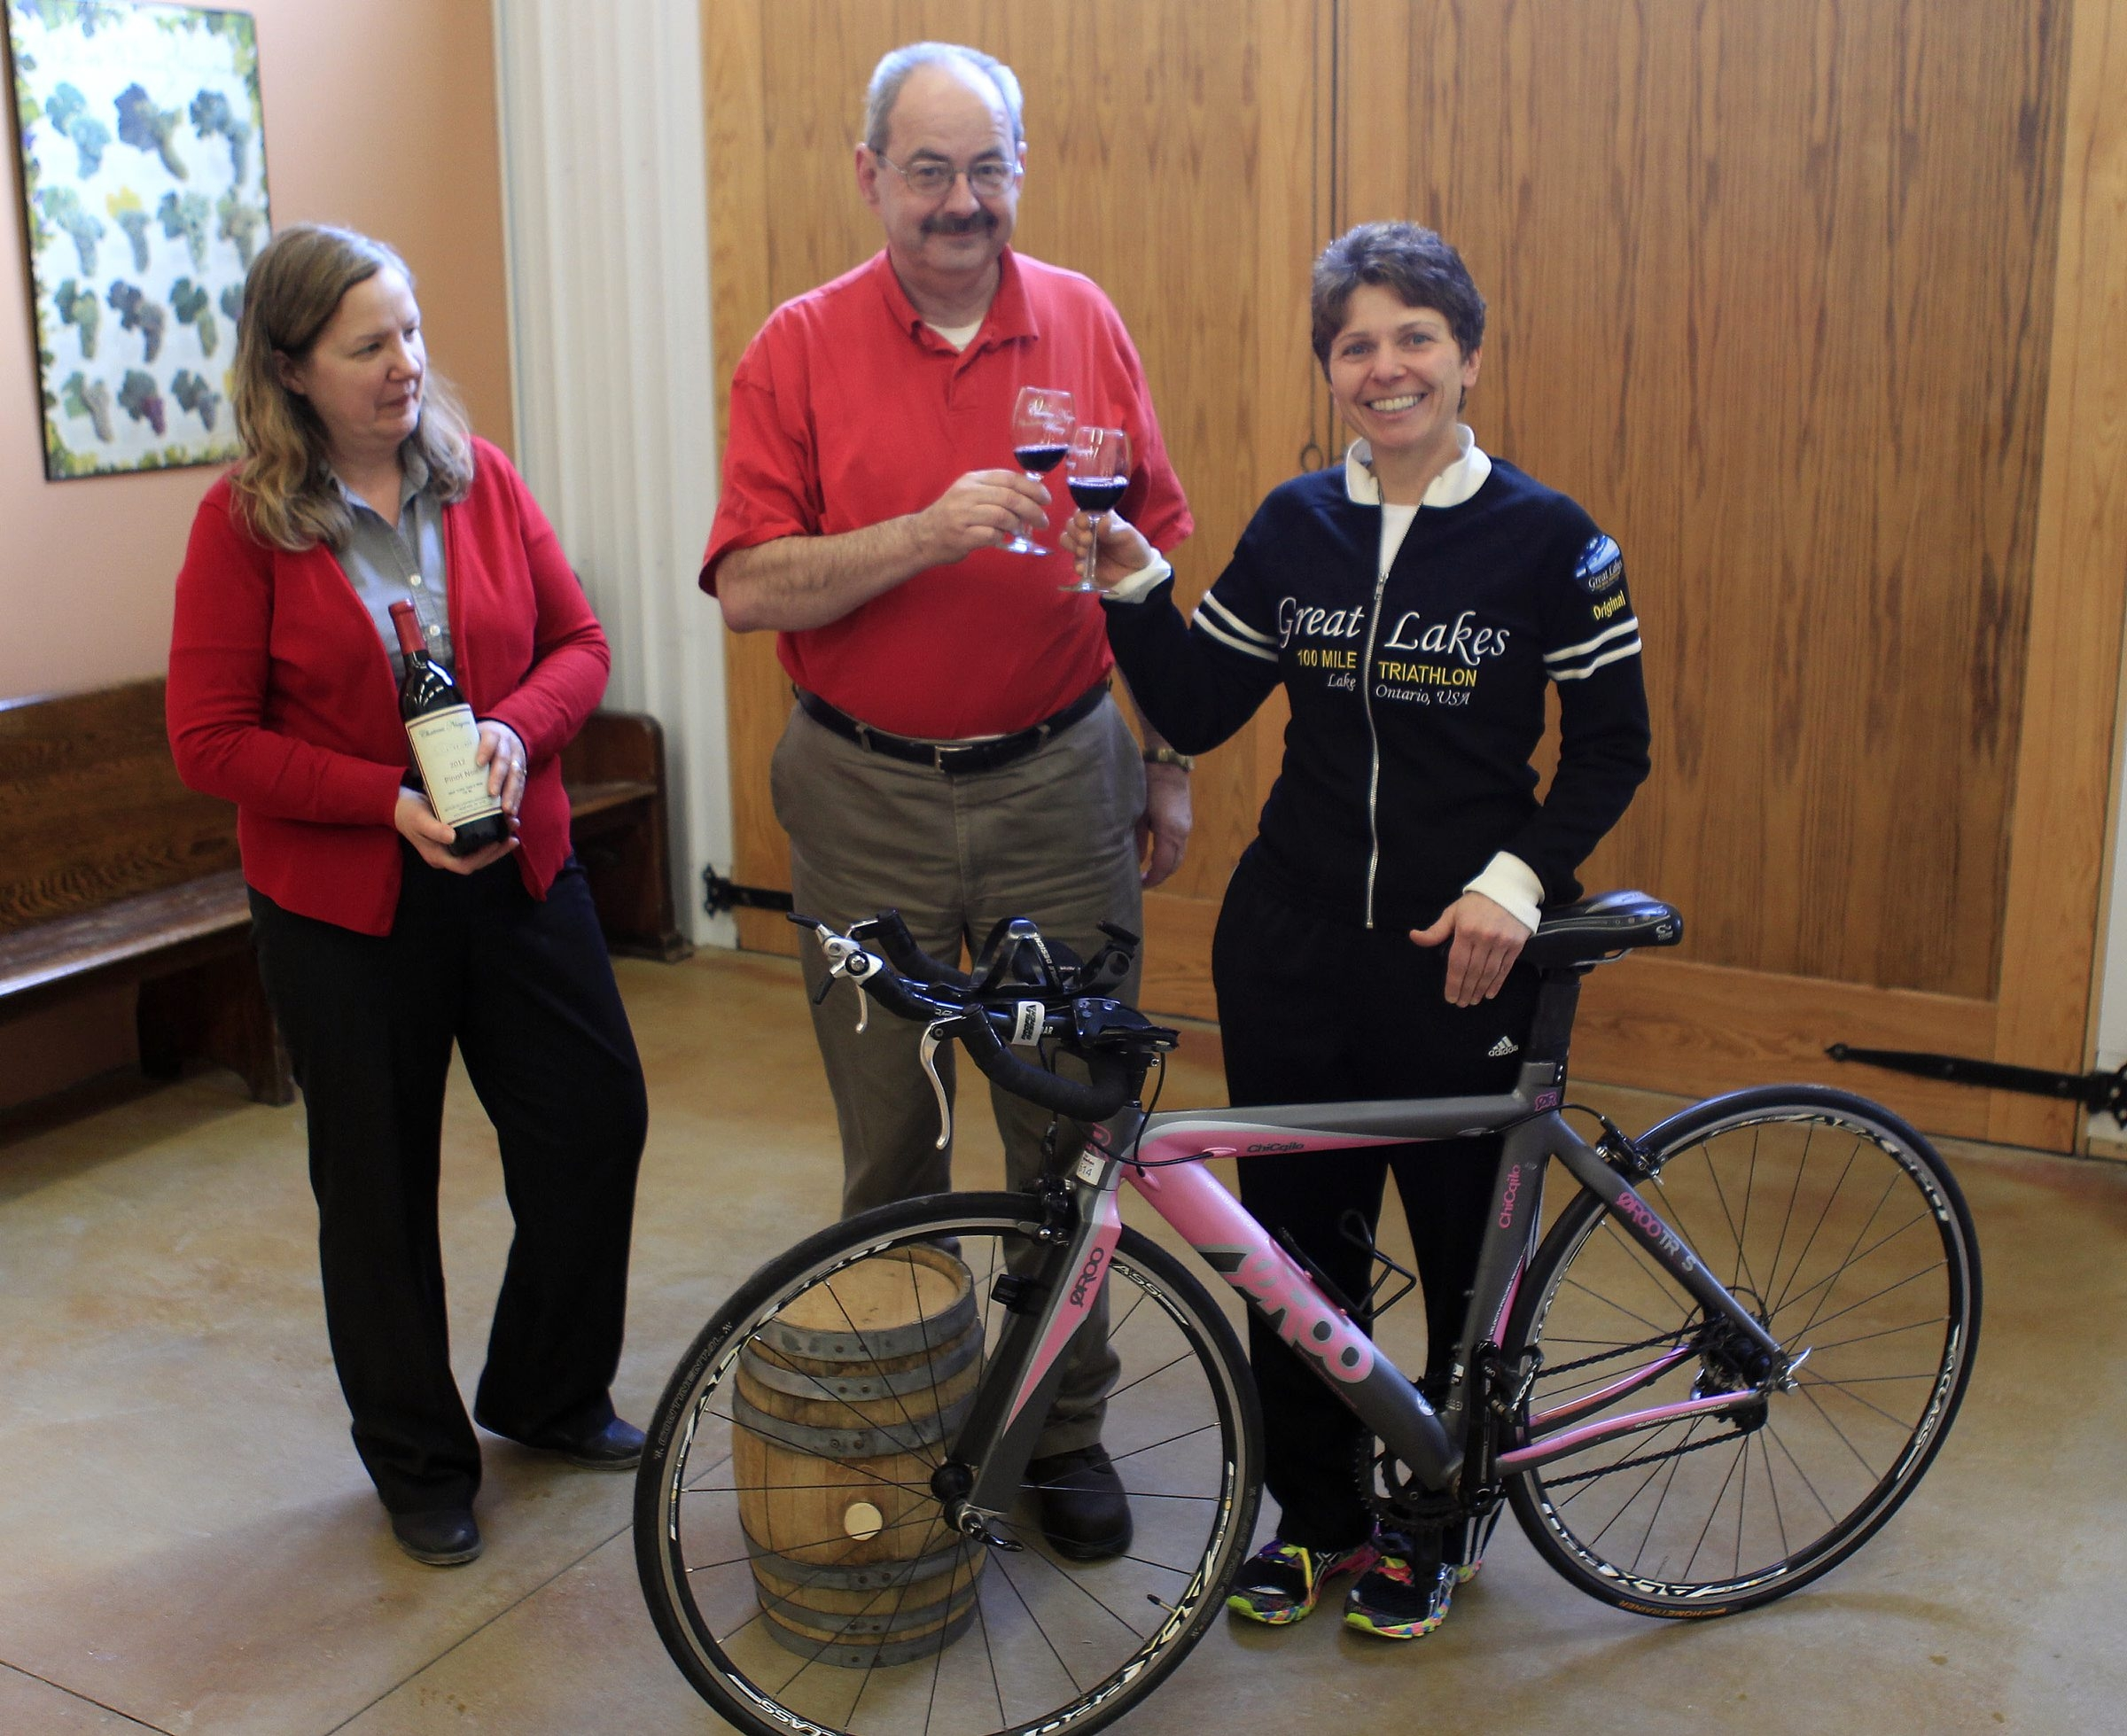 Stefany Critelli, a local biker, is helping organize the new bike ride. She meets with Jim and Kathy Baker.